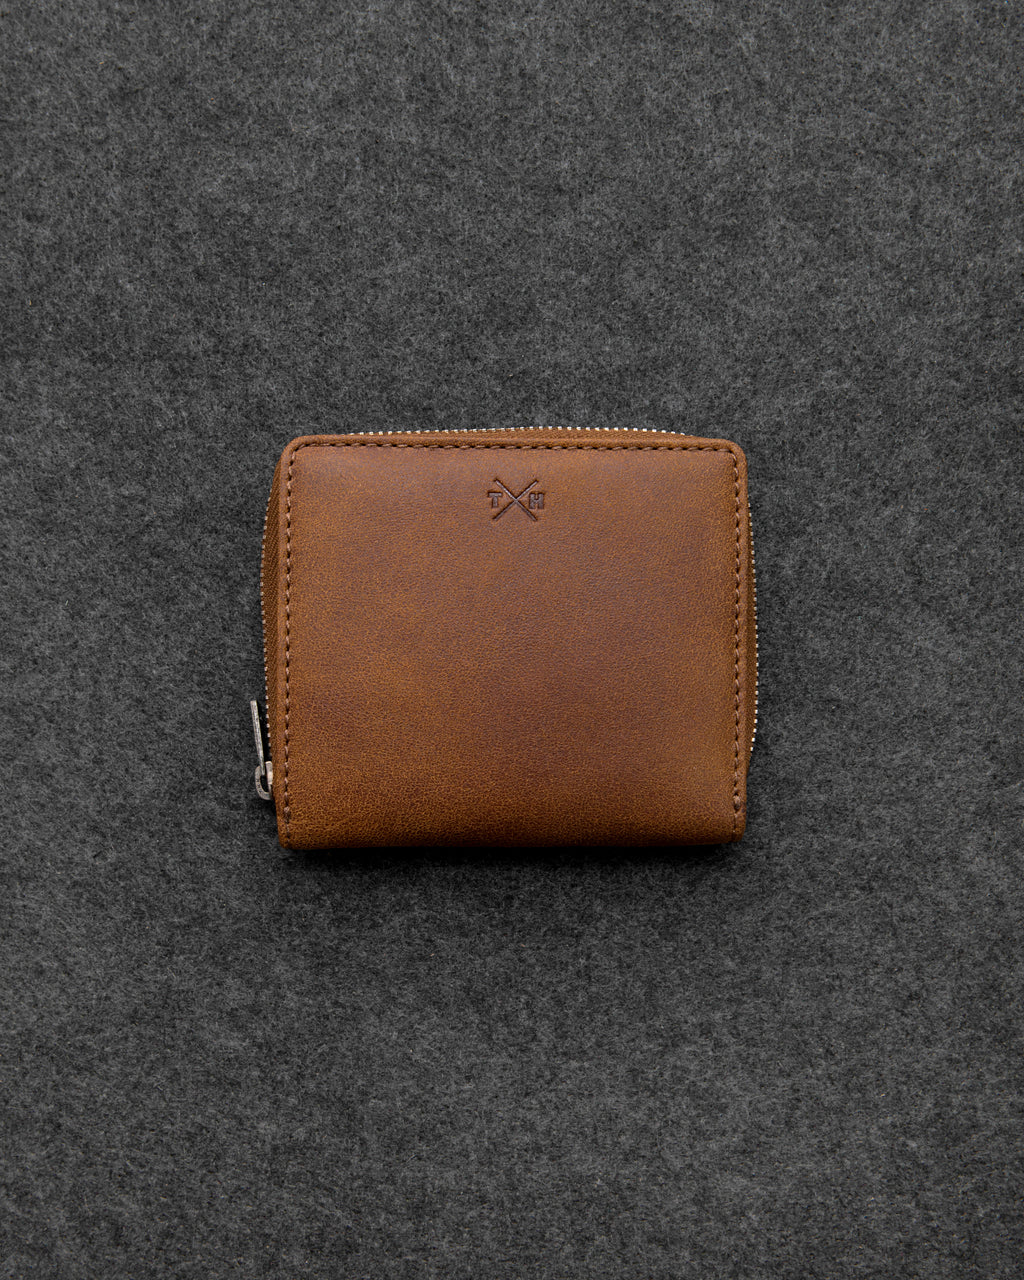 Yukon Leather Wallet Purse